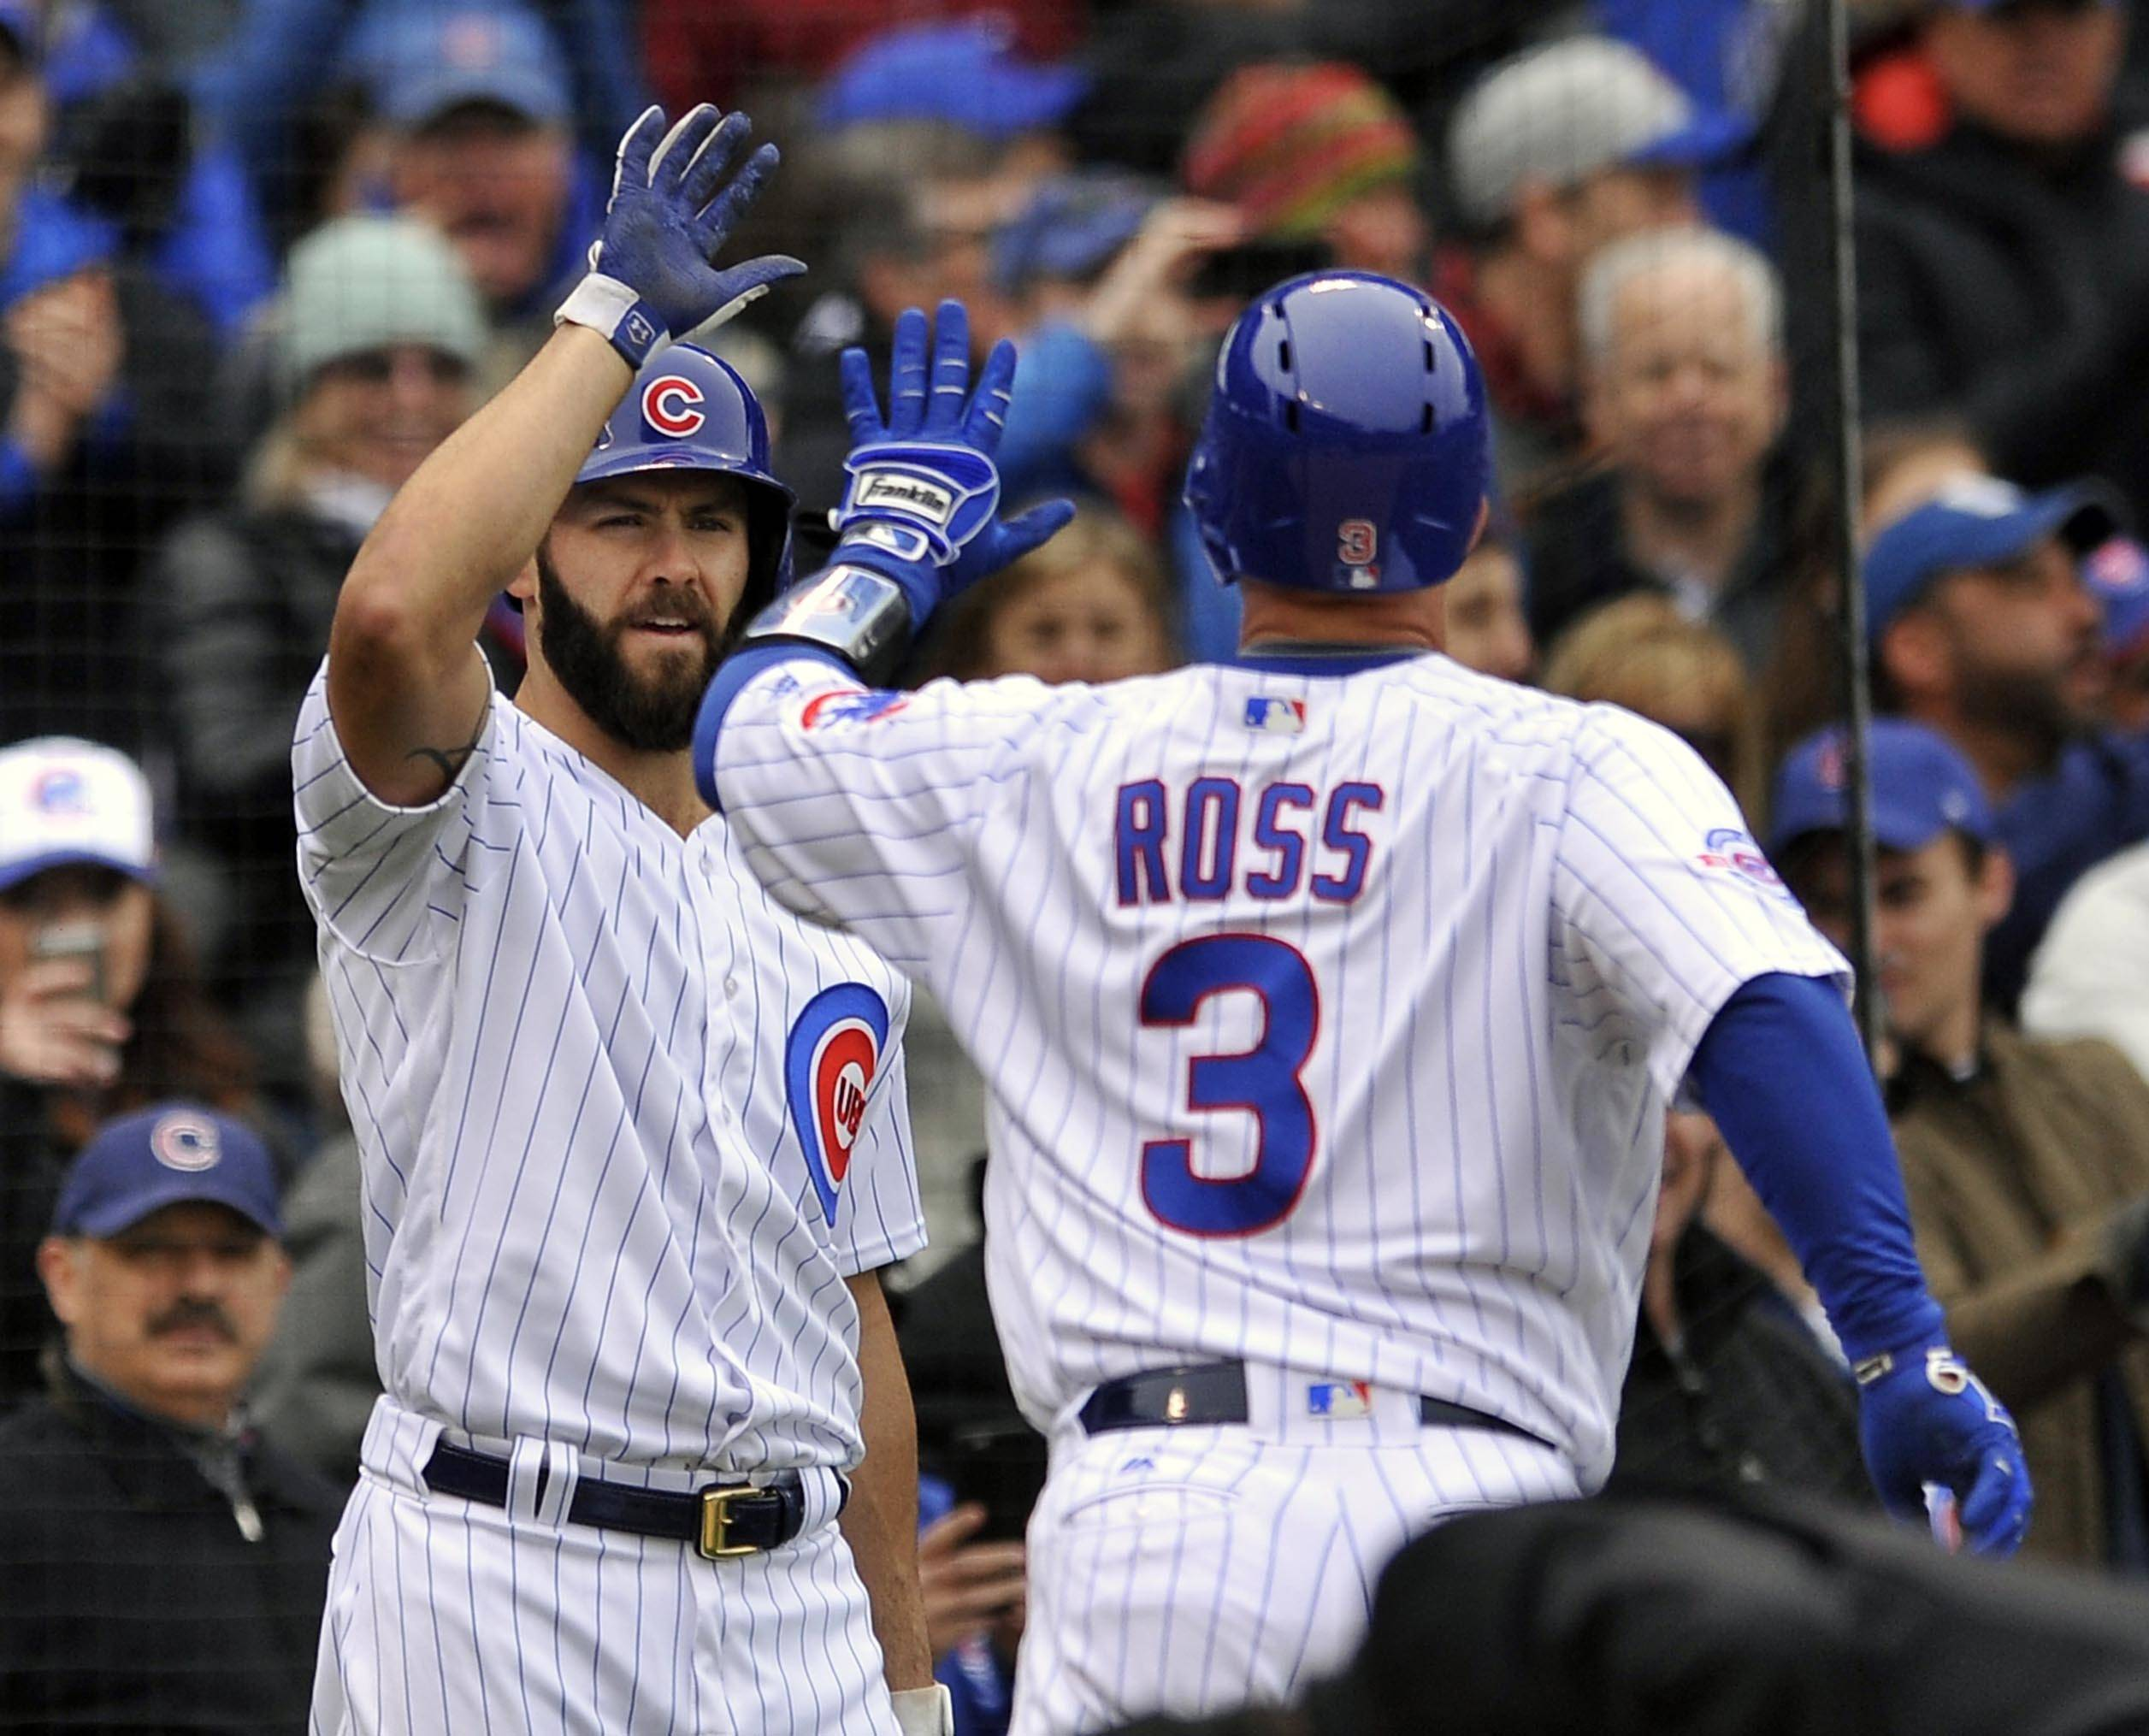 Arrieta moves to 5-0 as Chicago Cubs sweep Brewers